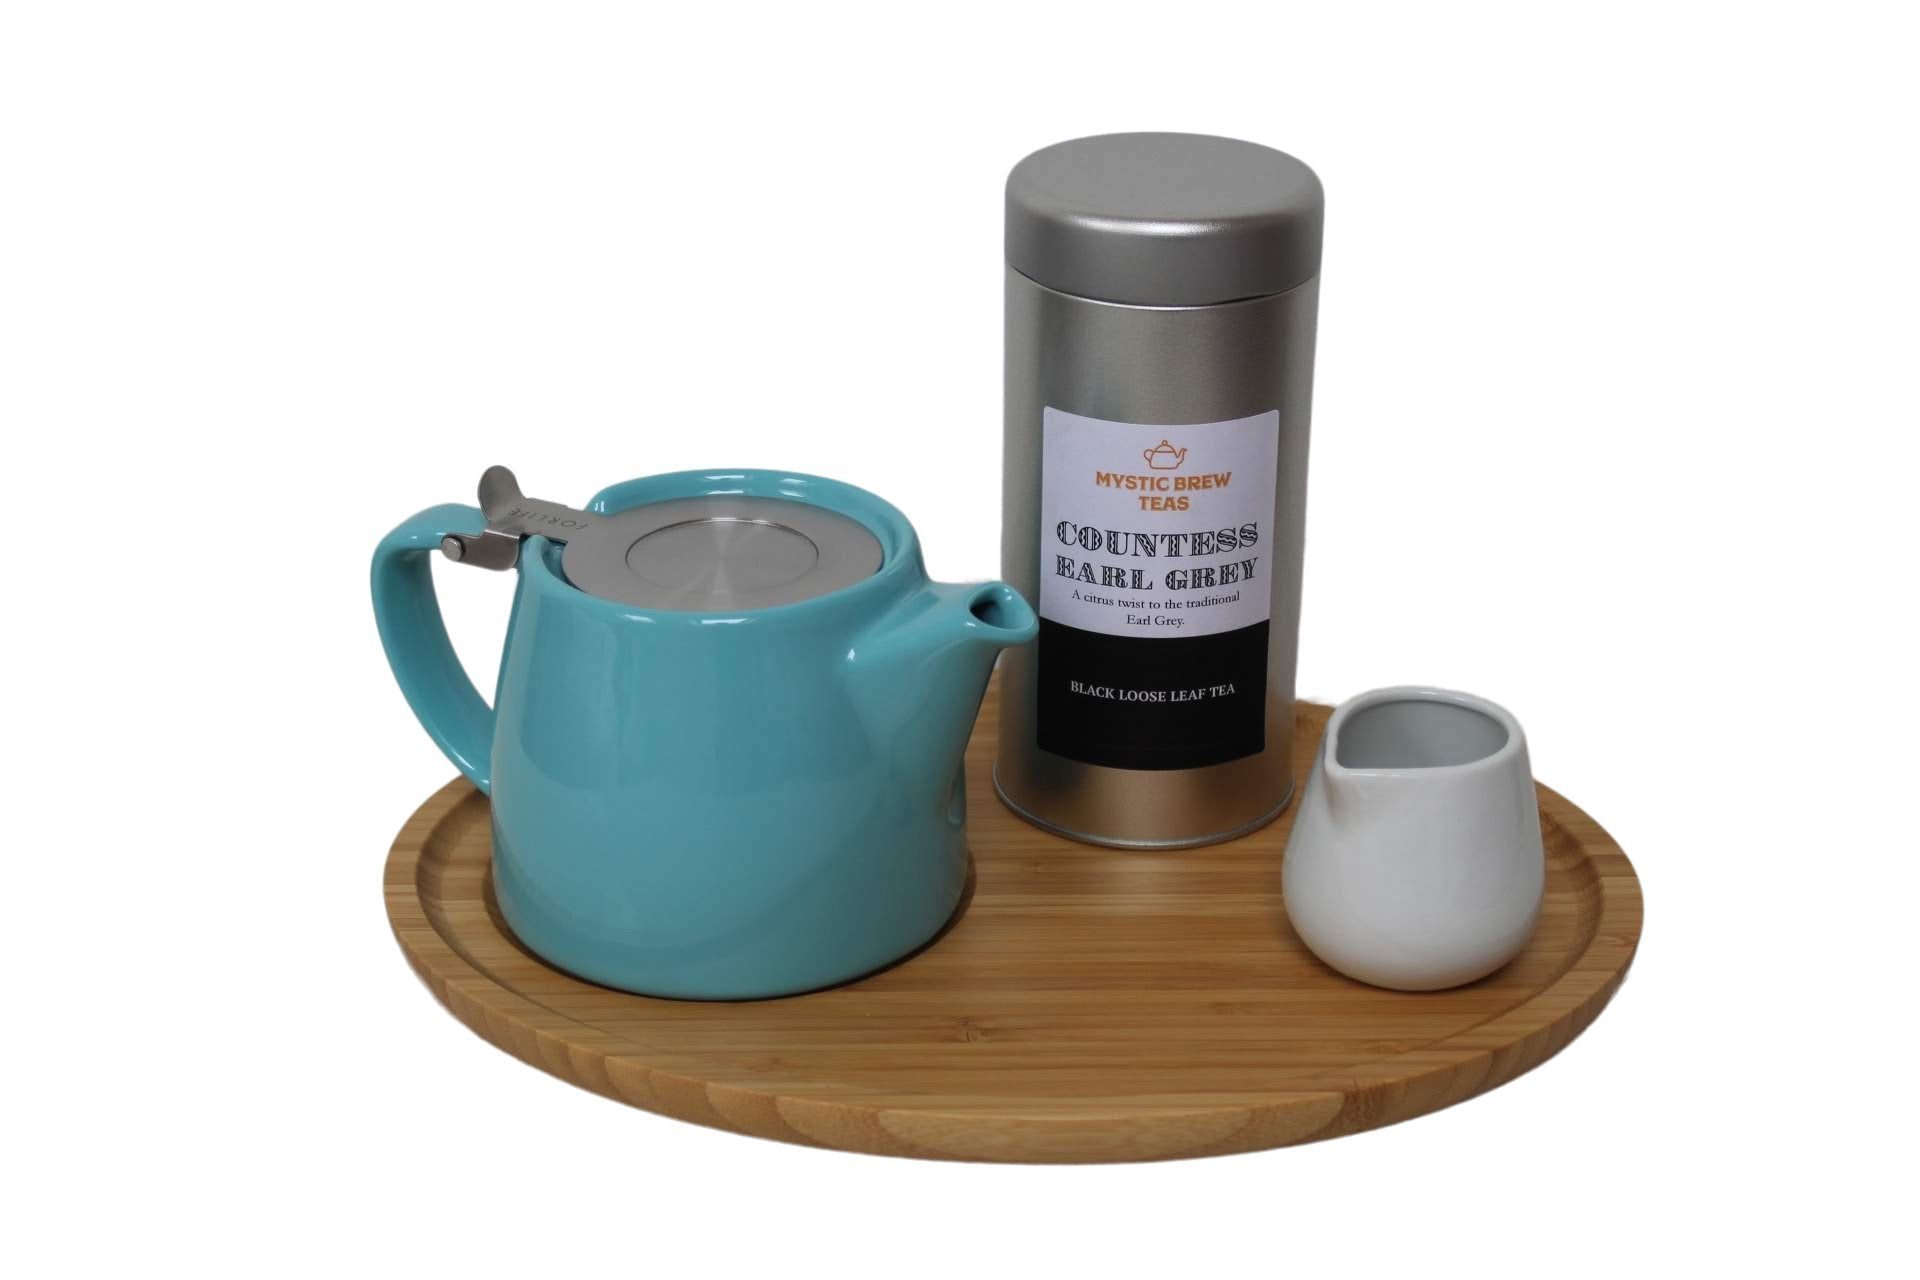 Forlife Teapot Turquoise, Bamboo Tray, Creamer & Countess Earl Grey 100g Caddy - Mystic Brew Teas